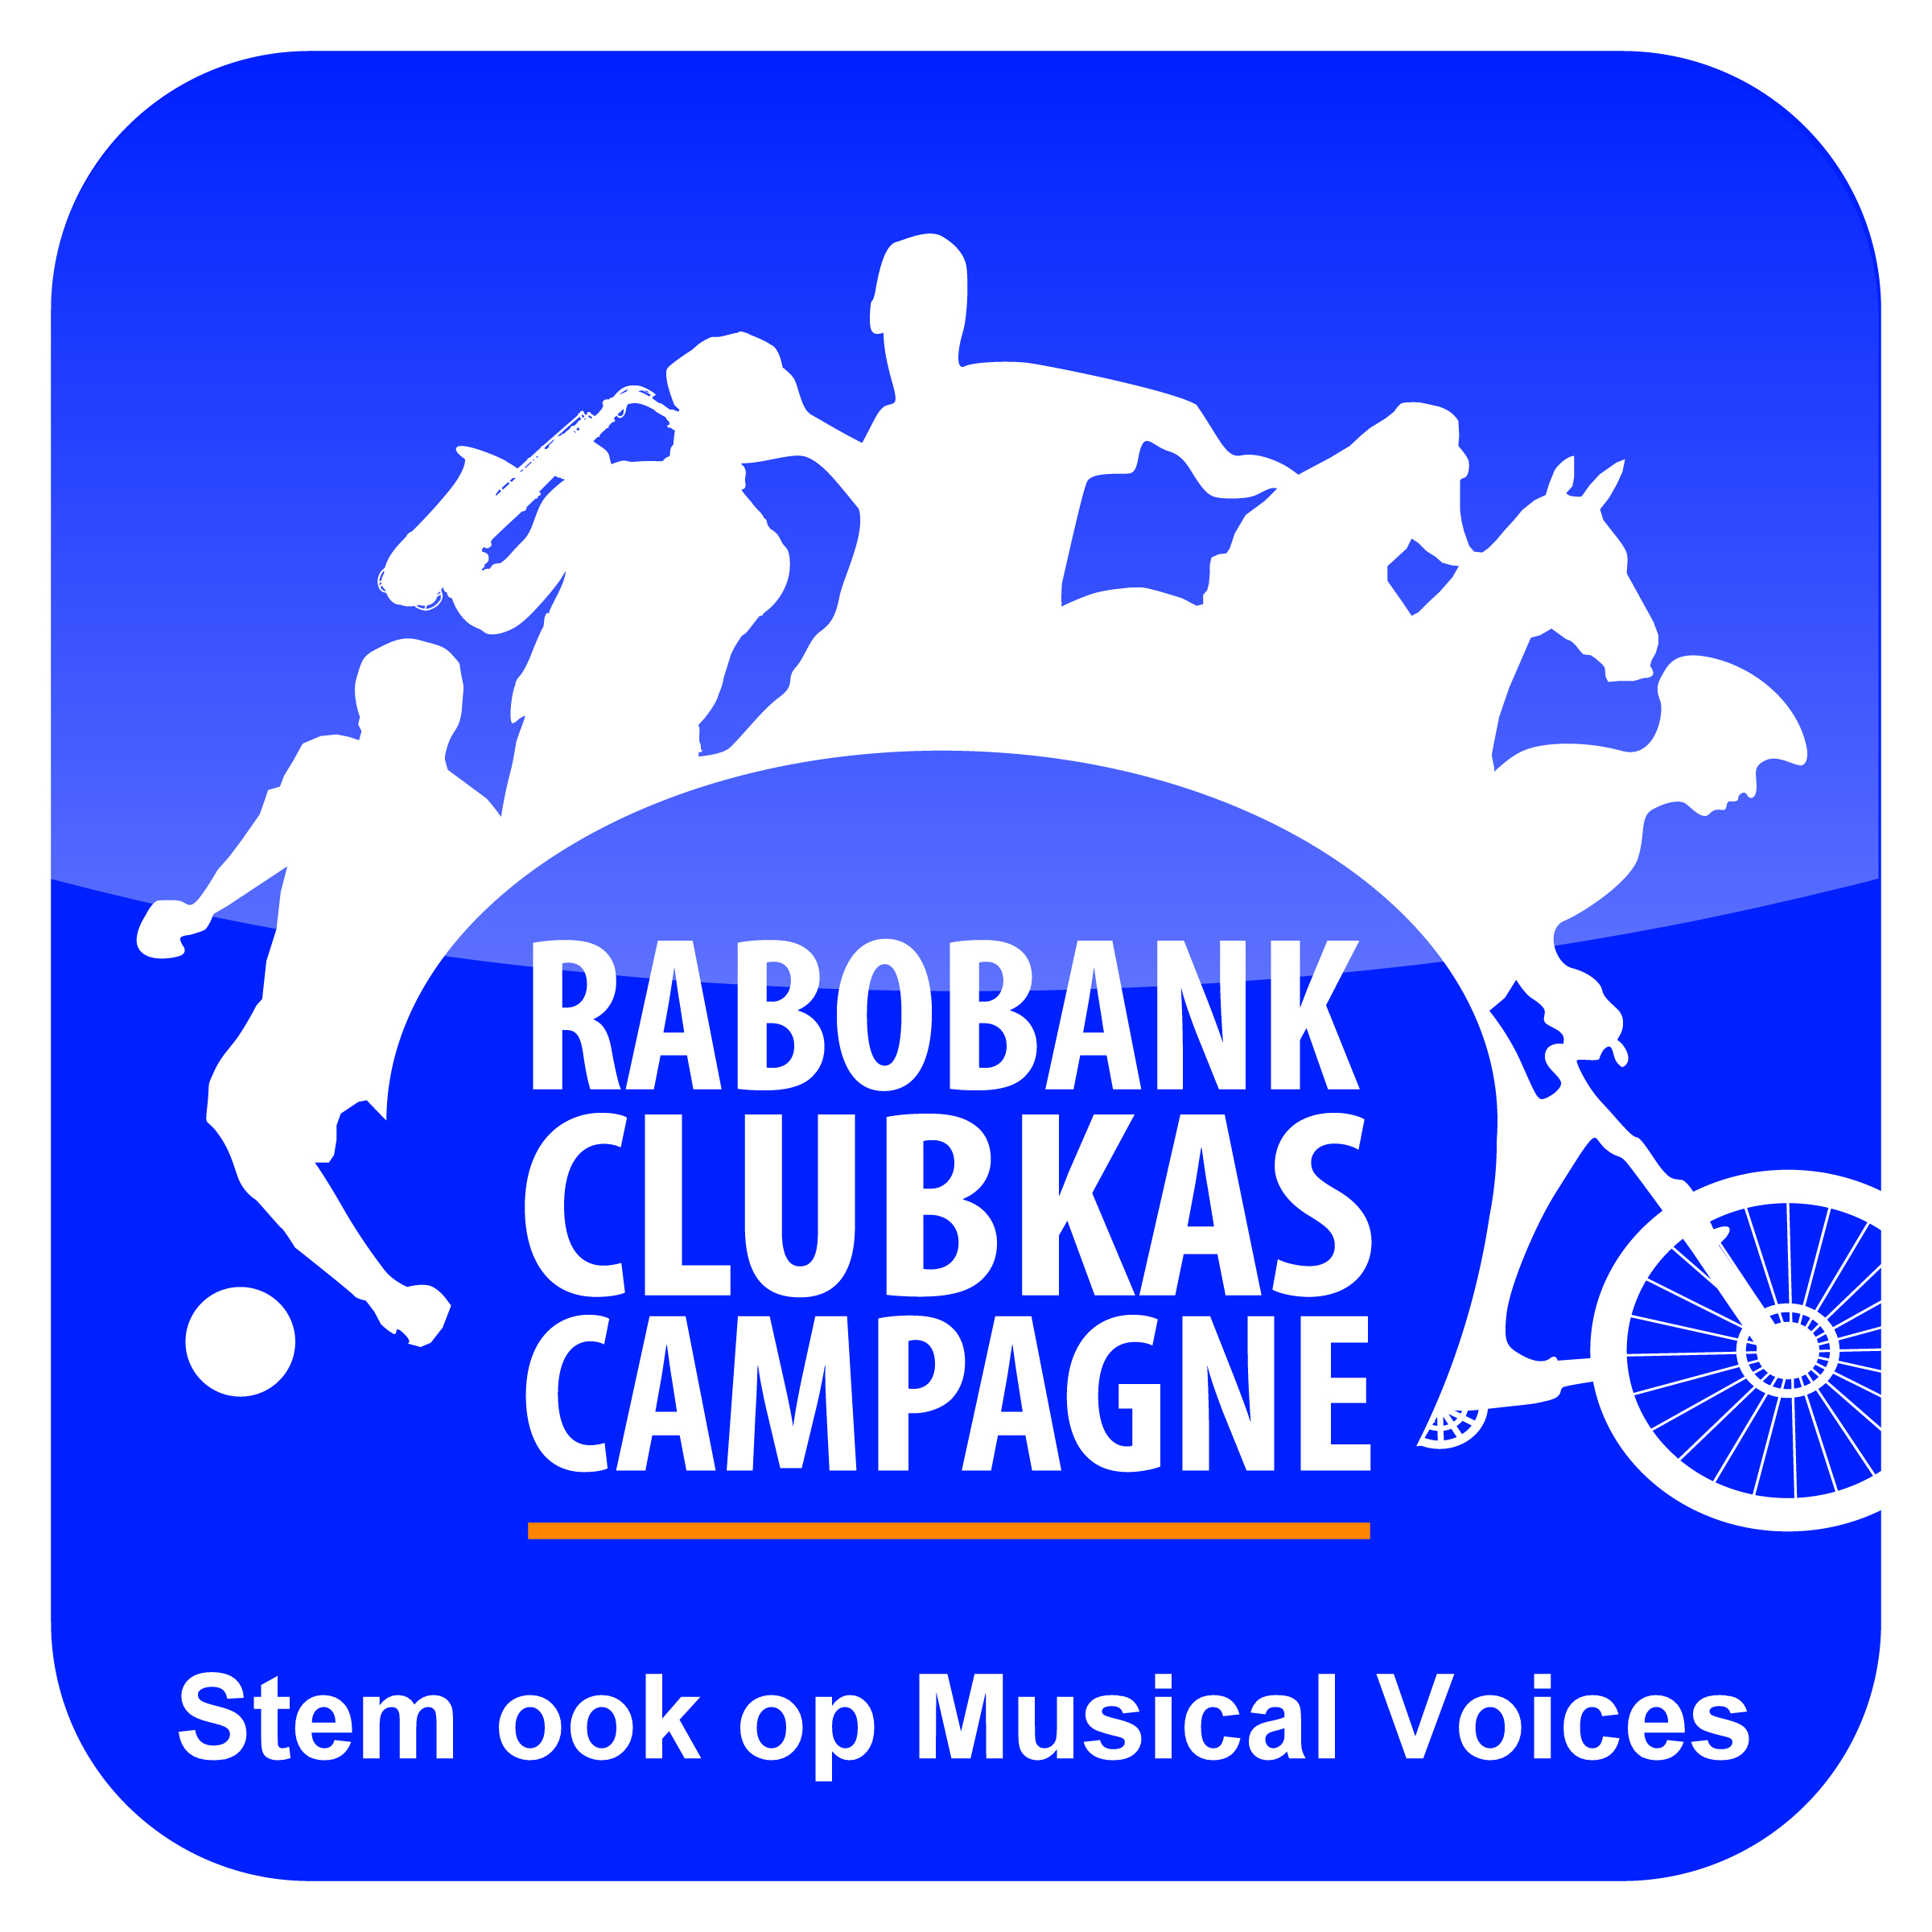 stem-op-musical-voices-tijdens-rabobank-clubkas-campagne-3